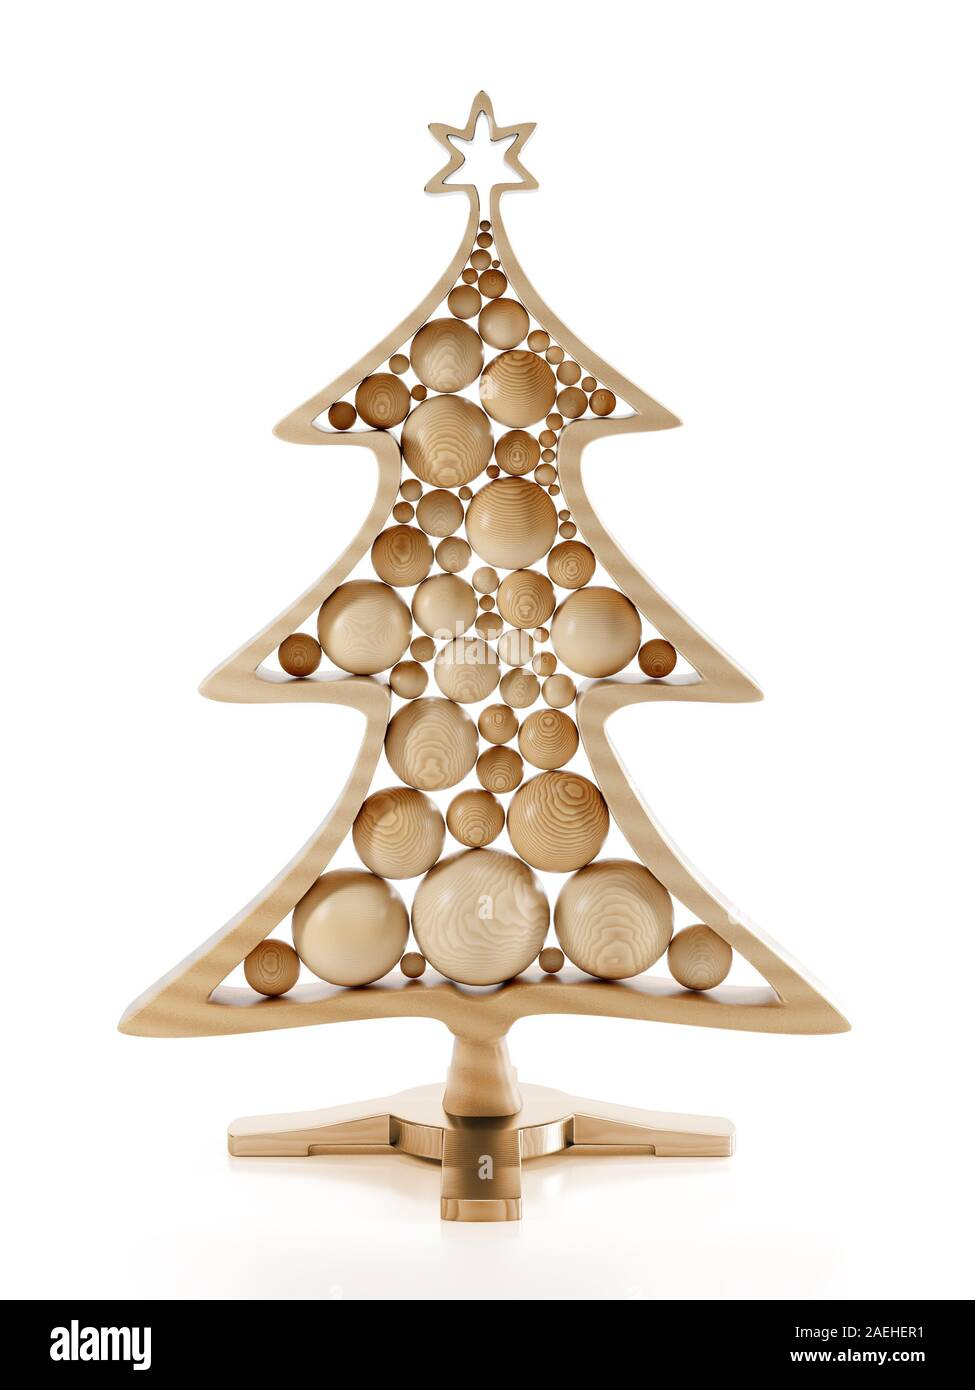 3d Render Of Wooden Christmas Tree With Balls On Stand Over White Background Stock Photo Alamy